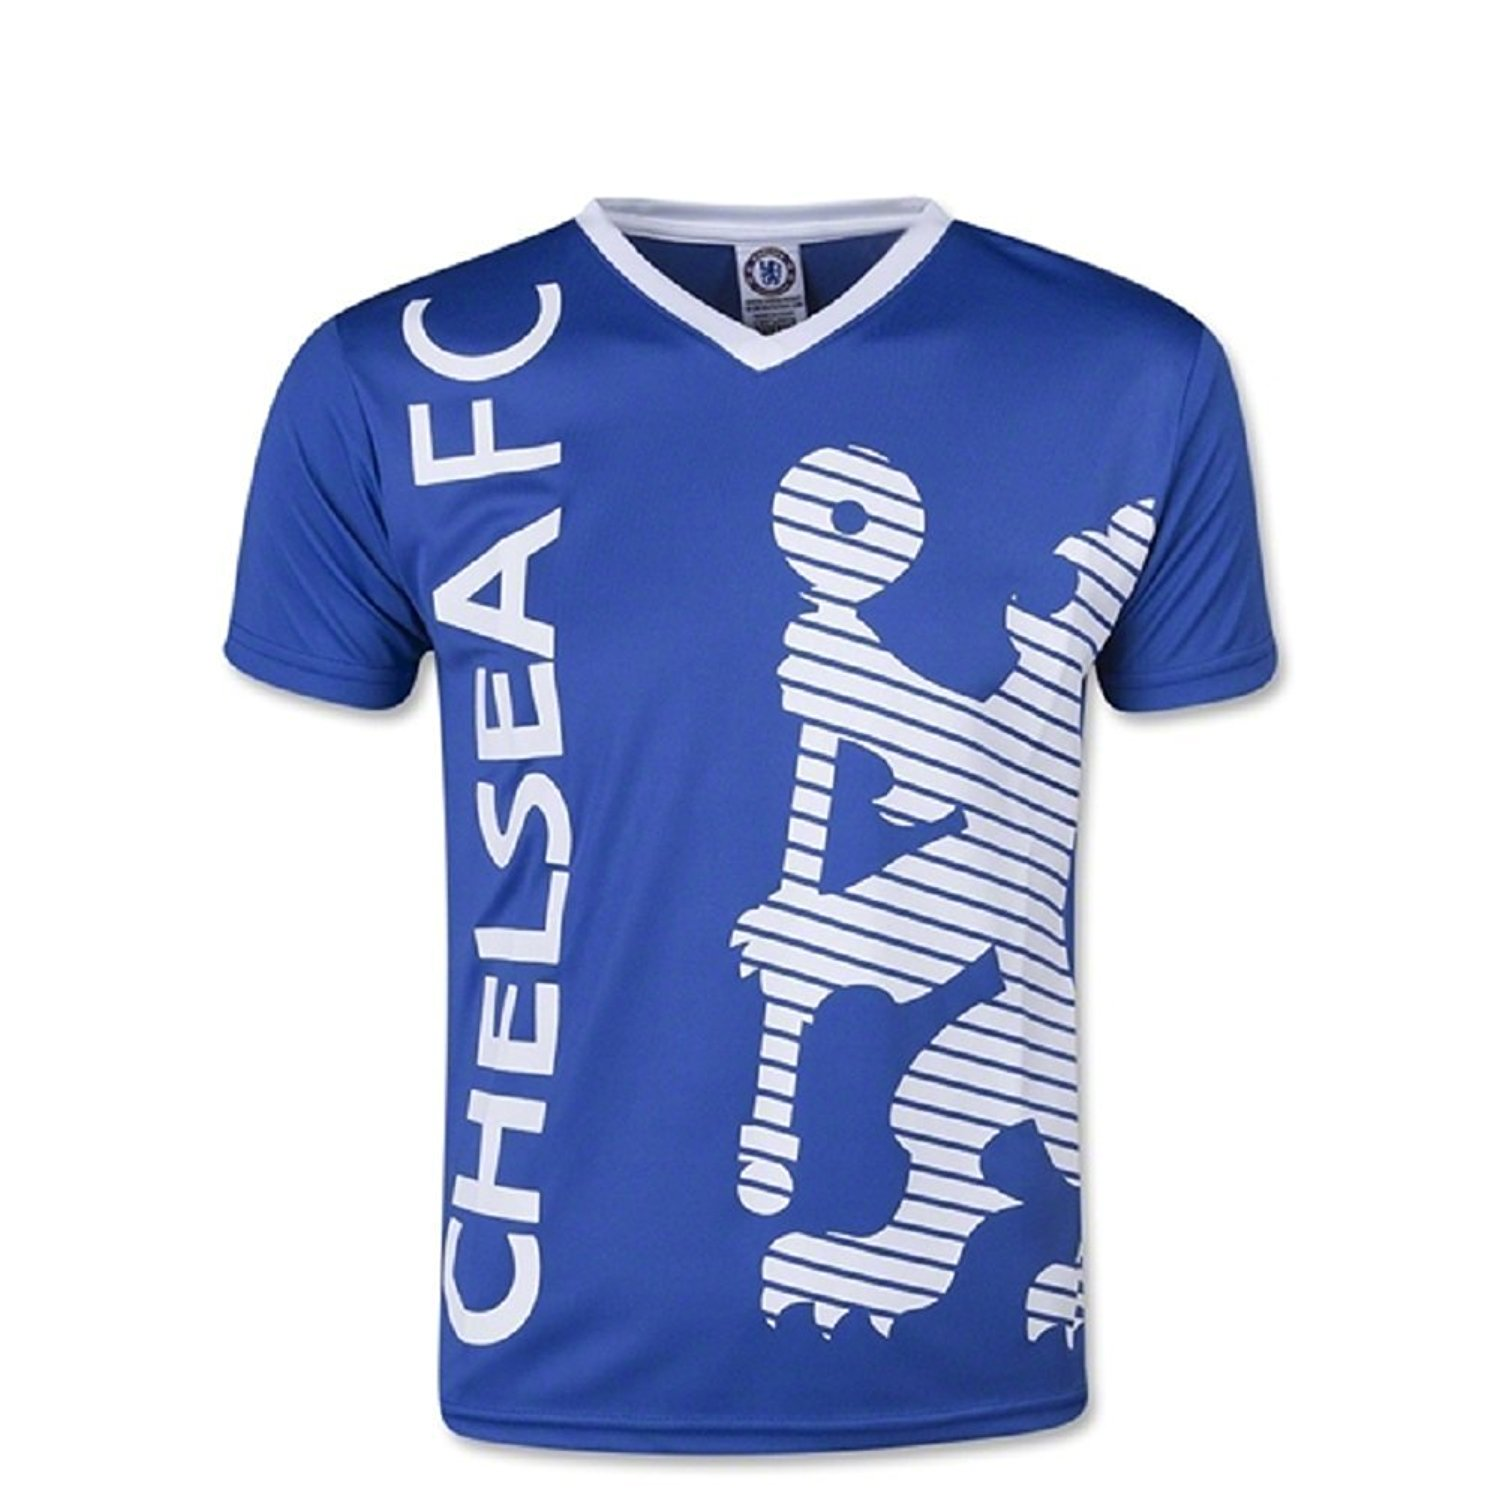 d40db11d1 Get Quotations · Chelsea FC Youth Soccer Training Jersey-Blue/White  Customized Any Name